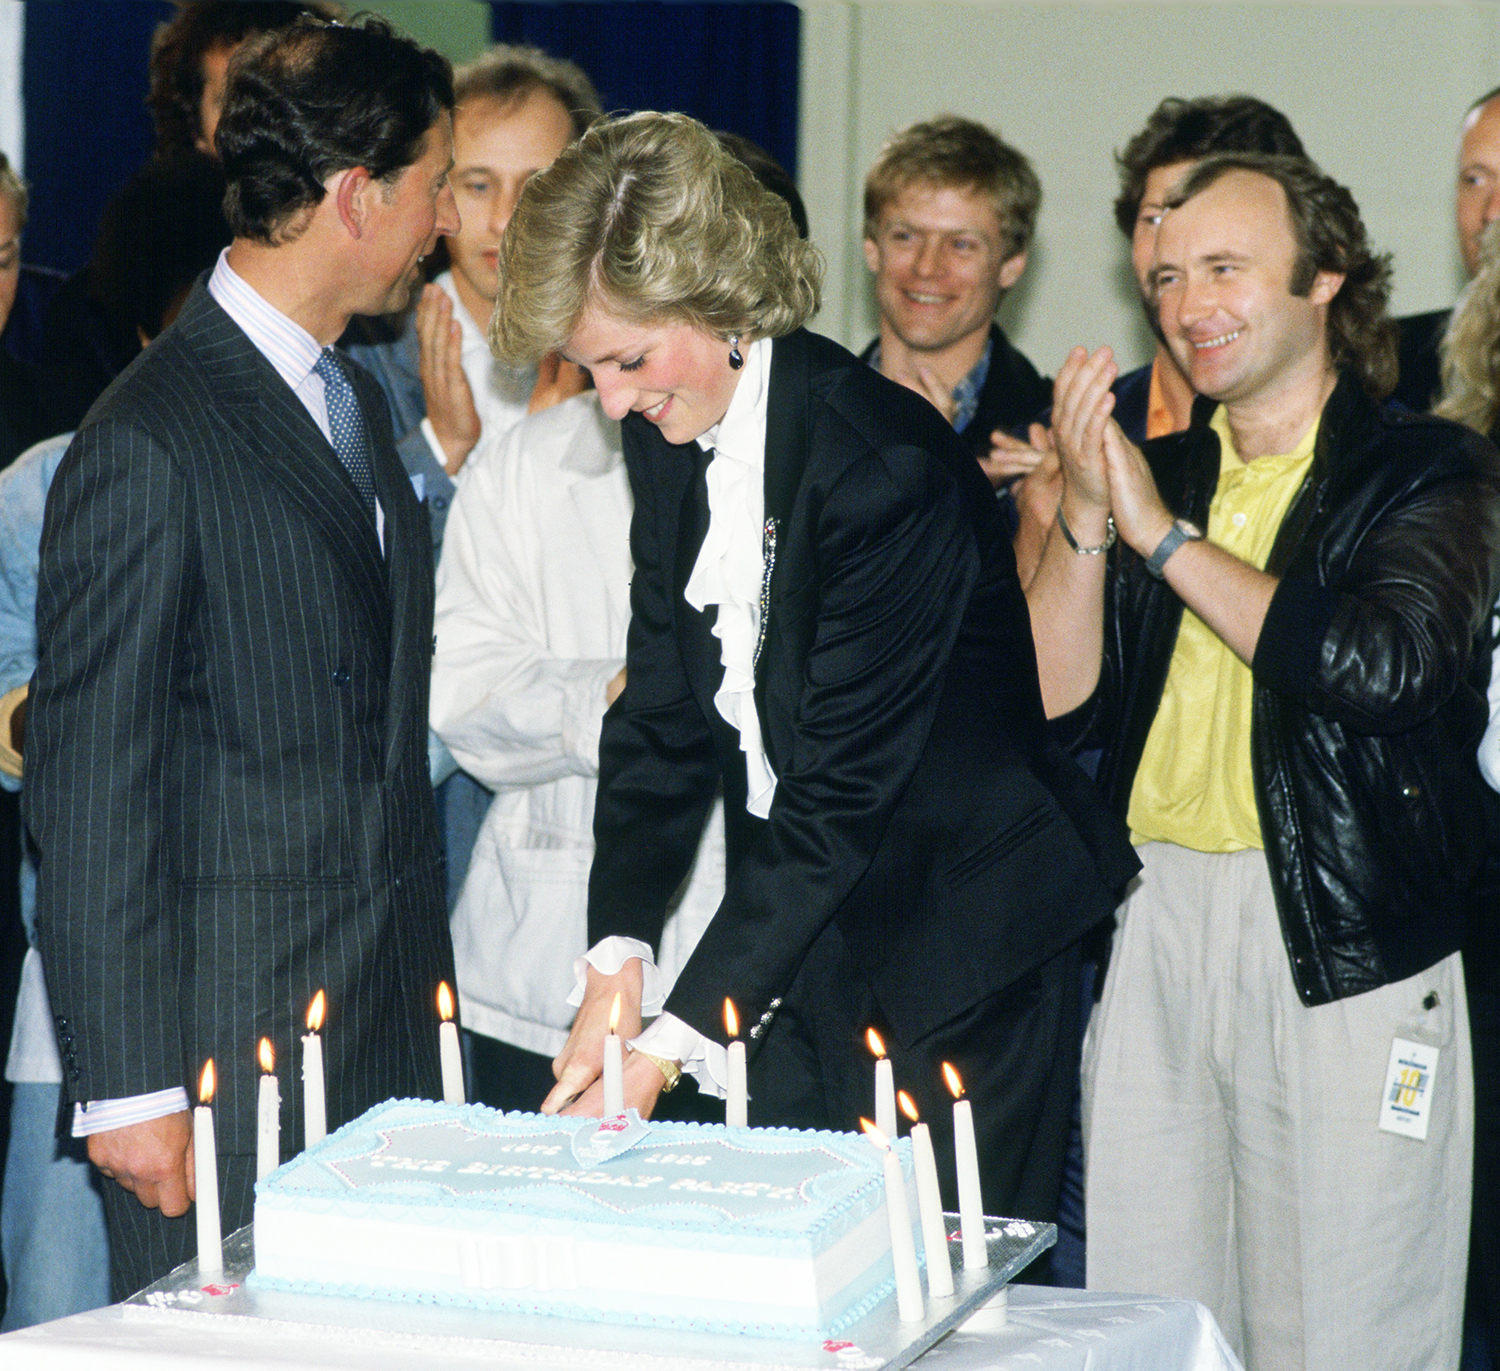 Diana, Princess of Wales and Prince Charles, Prince of Wales cutting a cake to celebrate ten years of the Prince's Trust Concert at Wembley, The singer and musician Phil Collins is standing on Diana's left